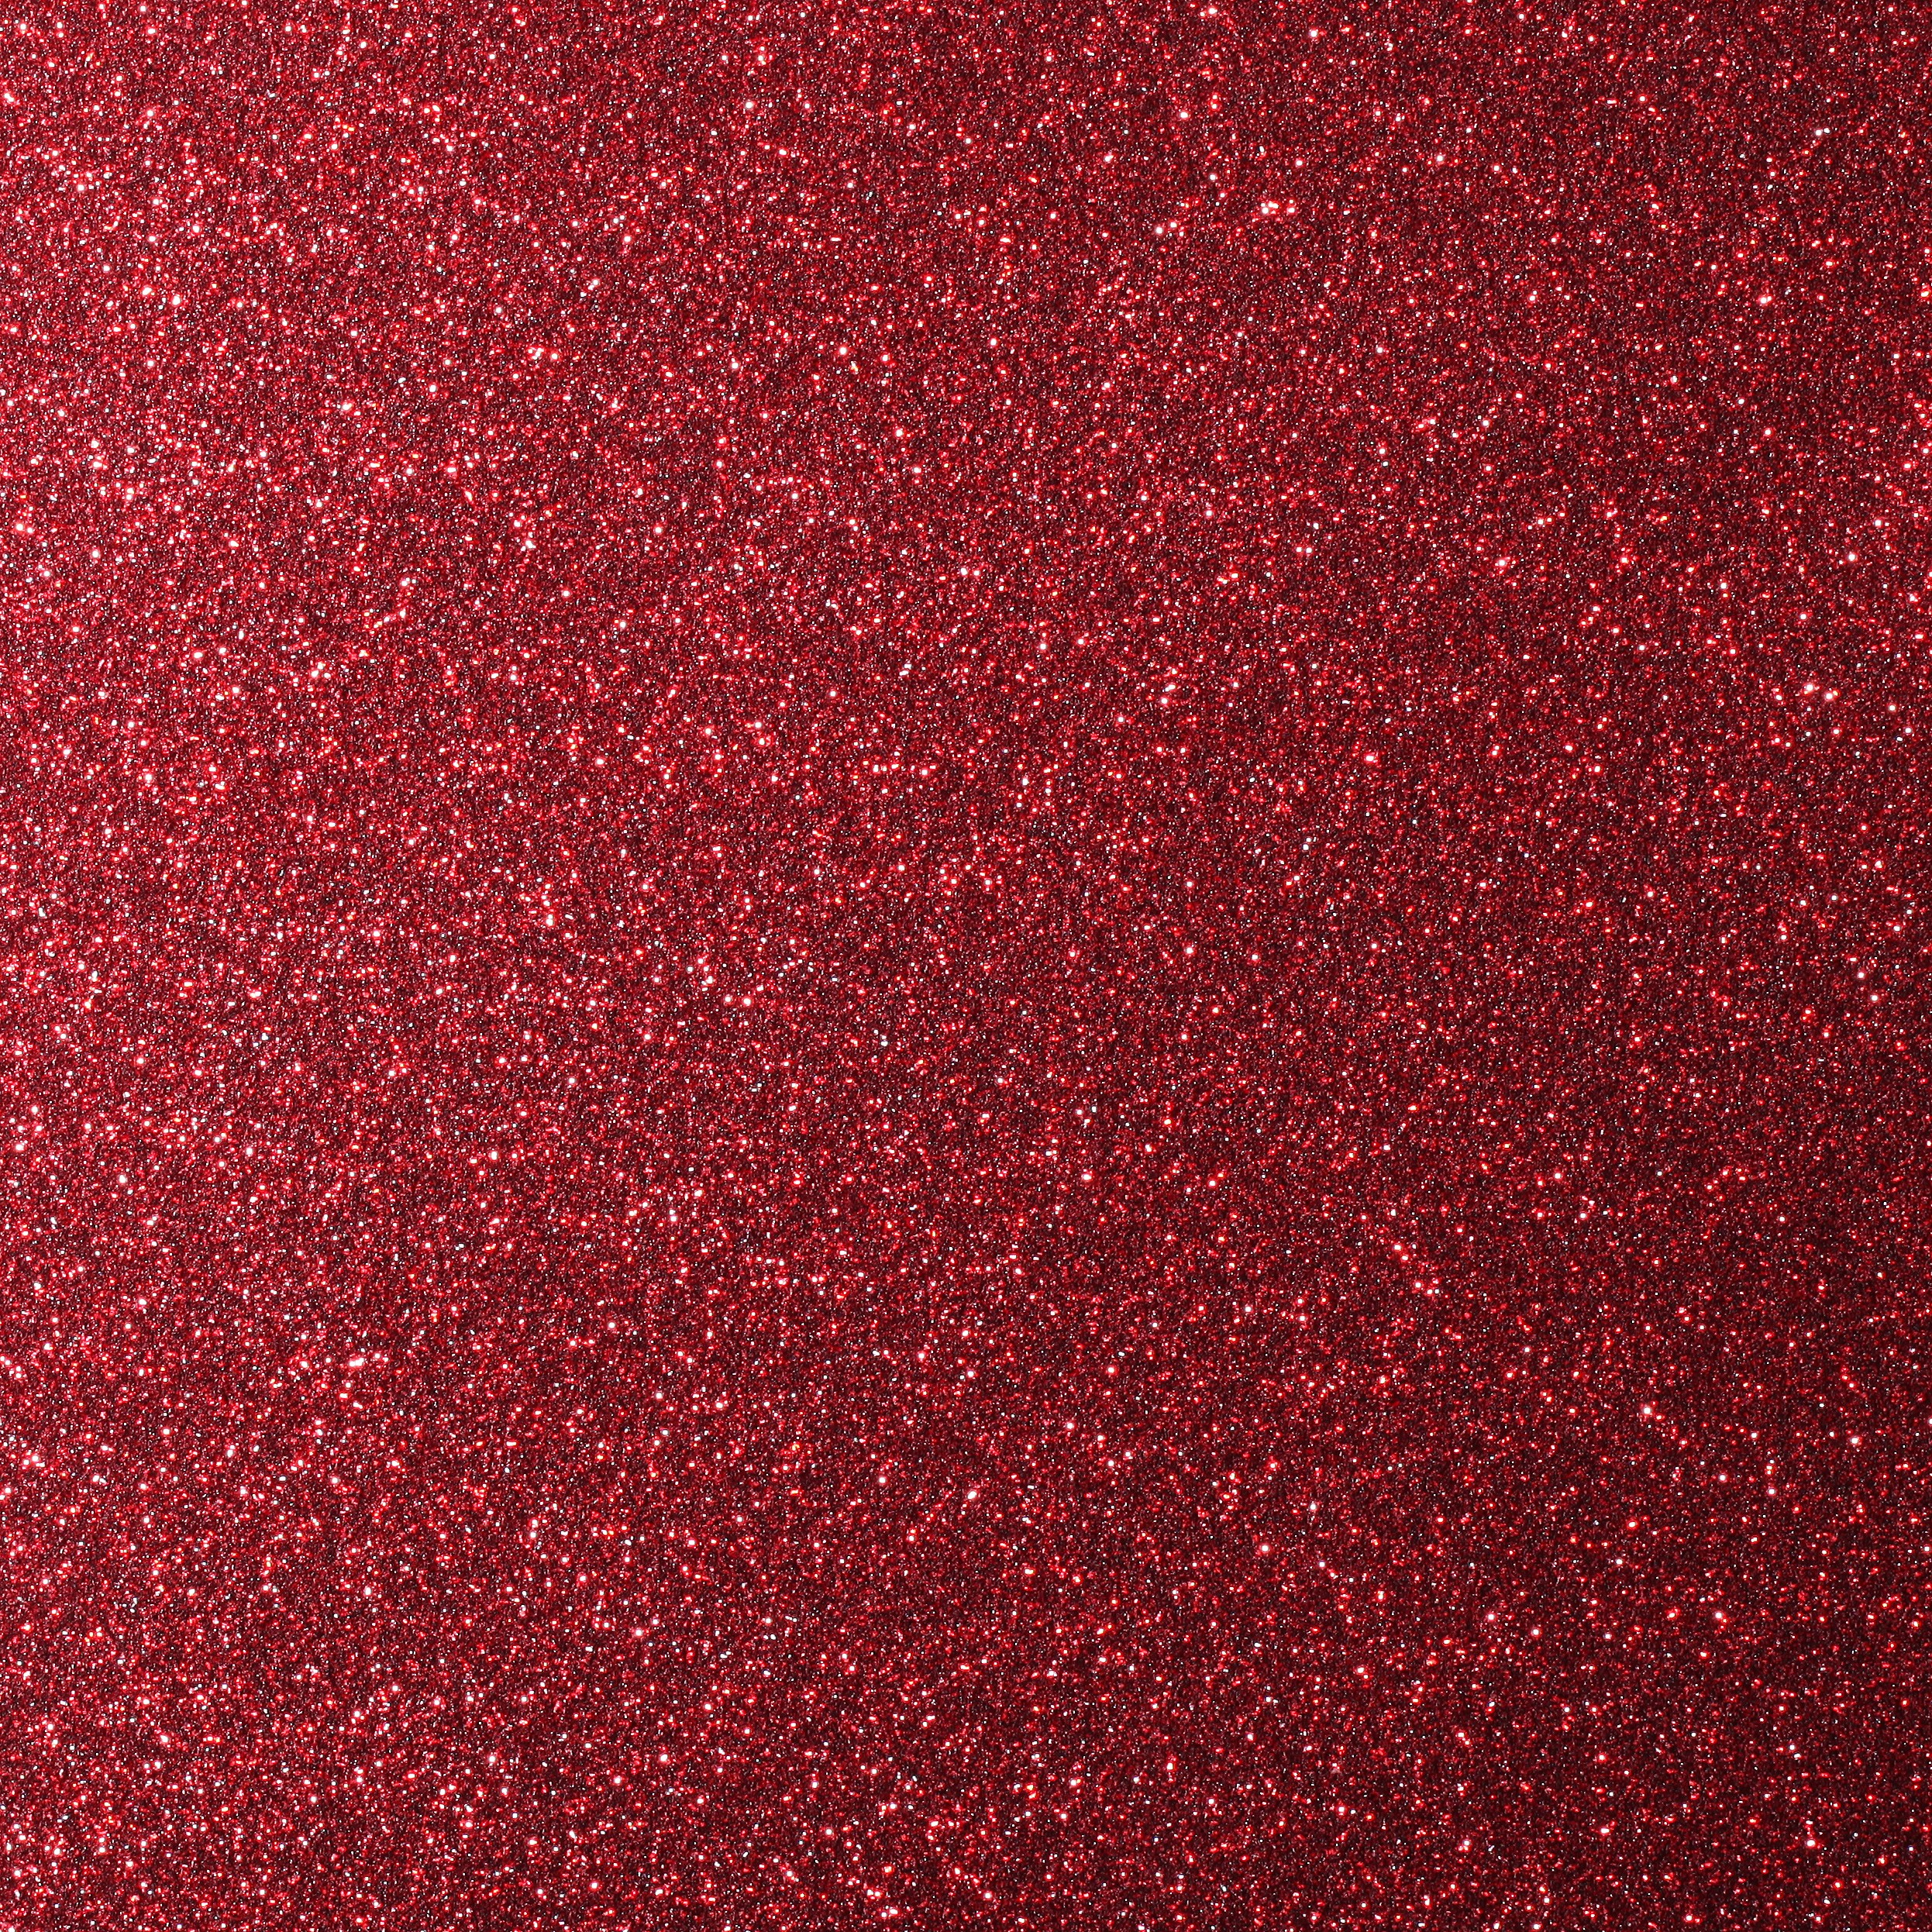 Glitter cardstock red 12 x 12 81 cover sheets bulk pack of 15 reheart Gallery